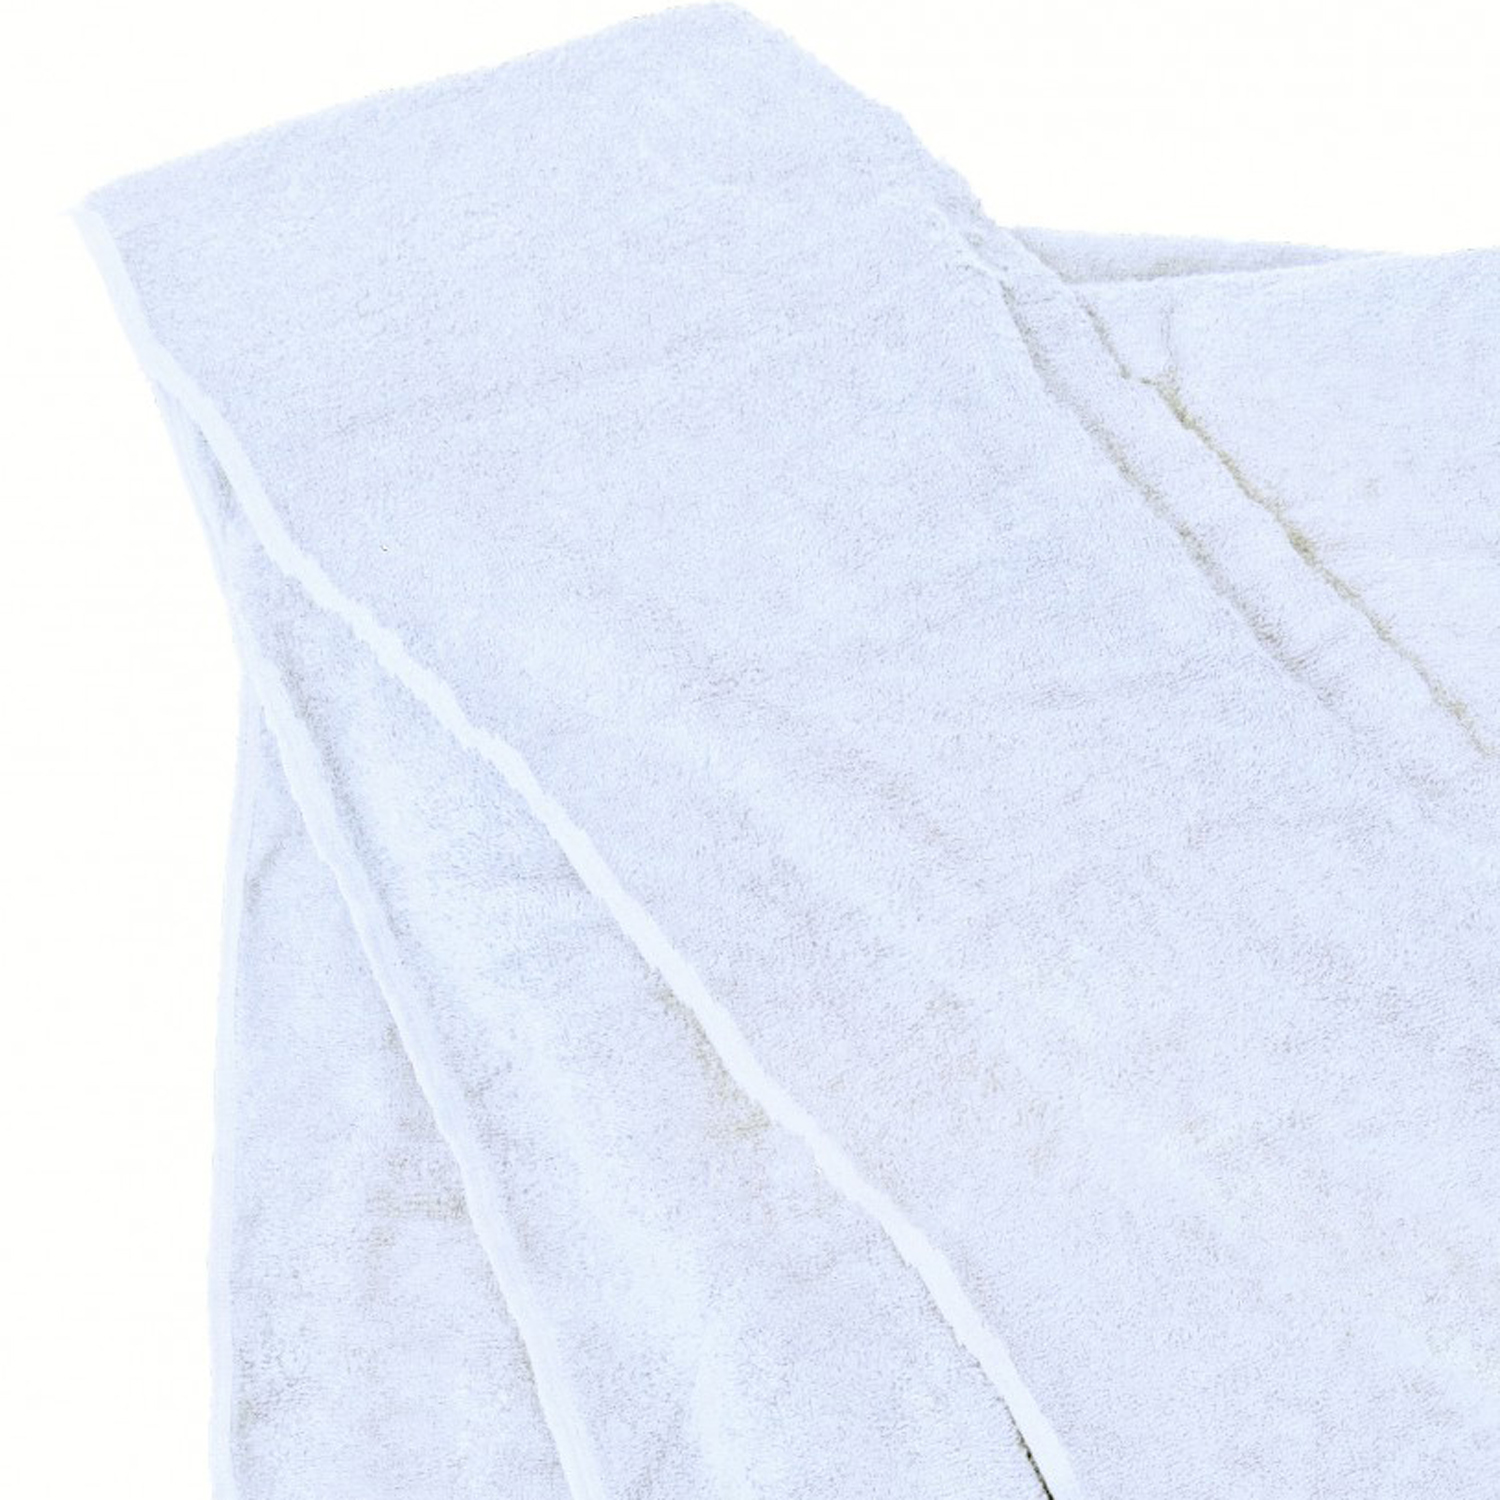 Detail Image to Bath towel in white by Kapart in large sizes 100x220 cm and 155x220 cm